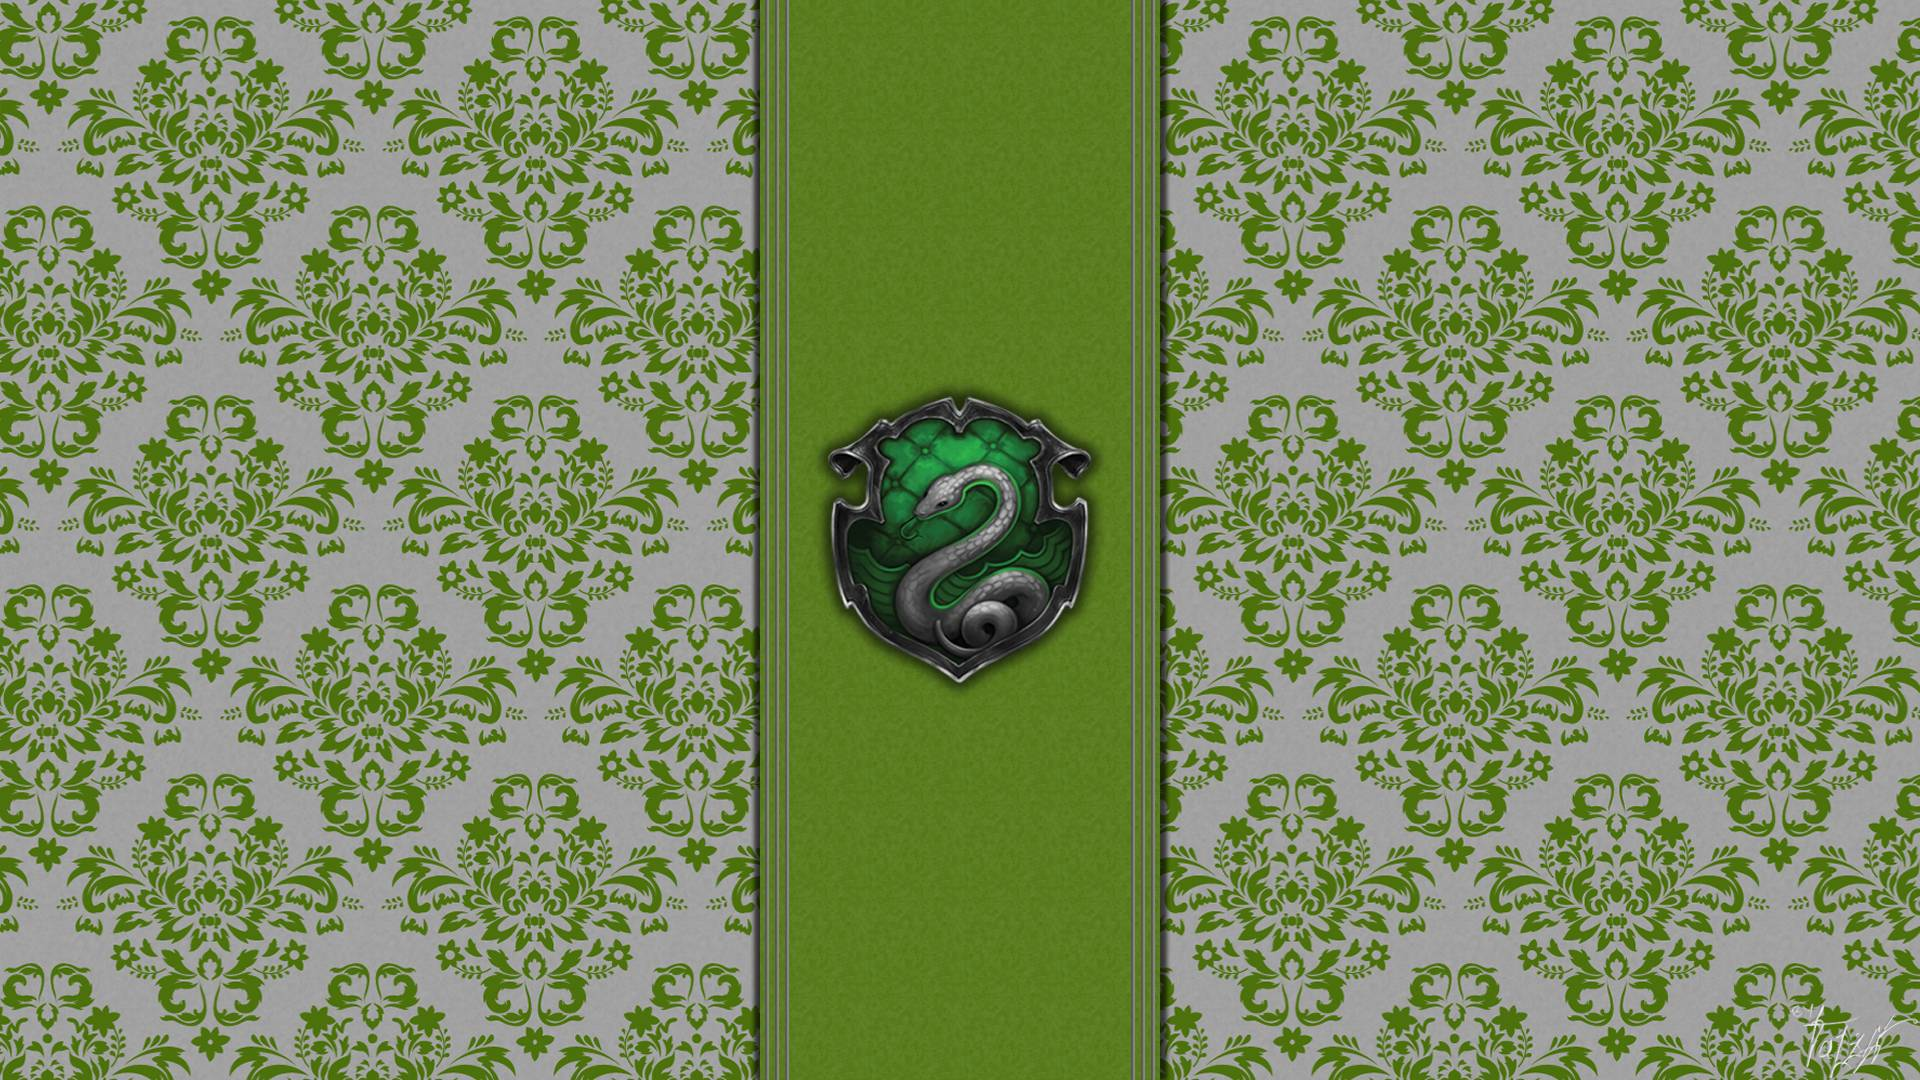 1920x1200 75+ ravenclaw desktop wallpapers on wallpaperplay>. Slytherin Wallpapers - Wallpaper Cave